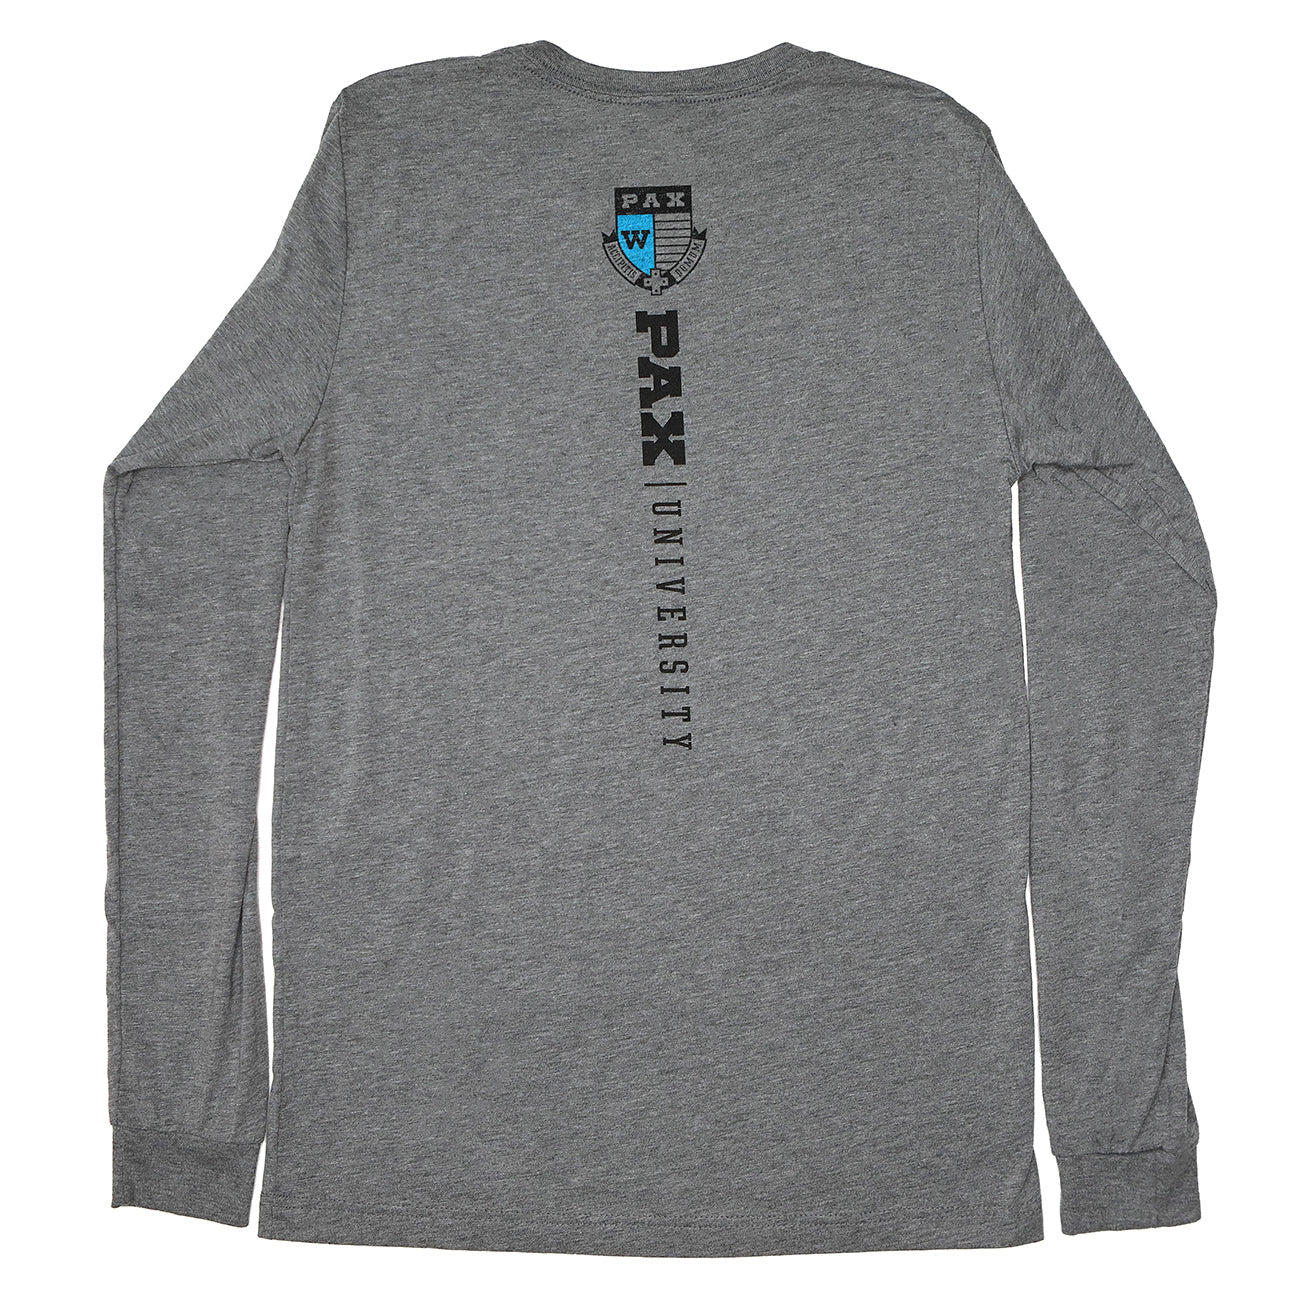 PAX West MMXX Fitted Long Sleeve Tee